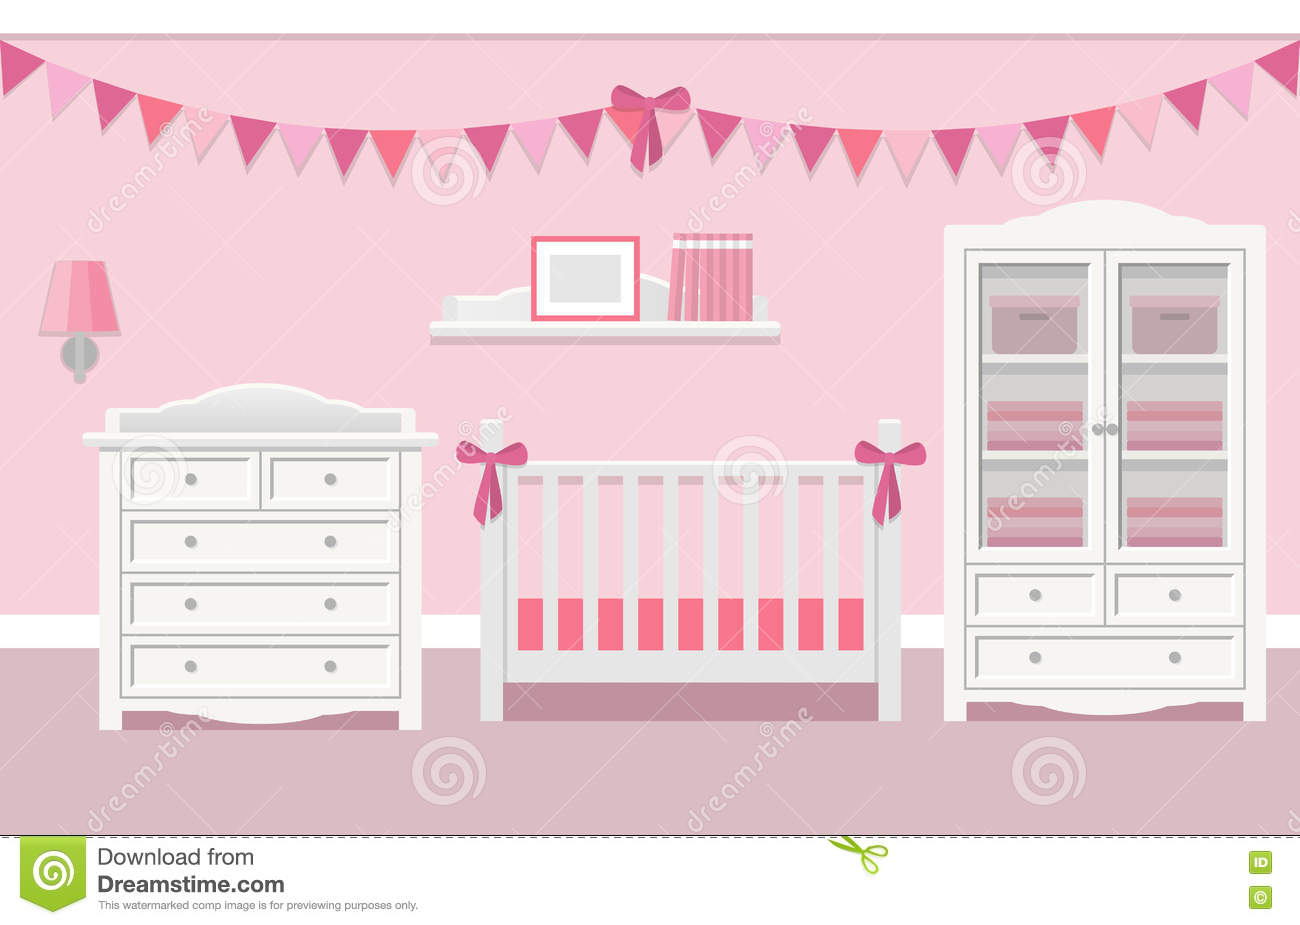 Modern baby nursery style neutral colors furniture ideas for Best brand of paint for kitchen cabinets with baby boy room wall art